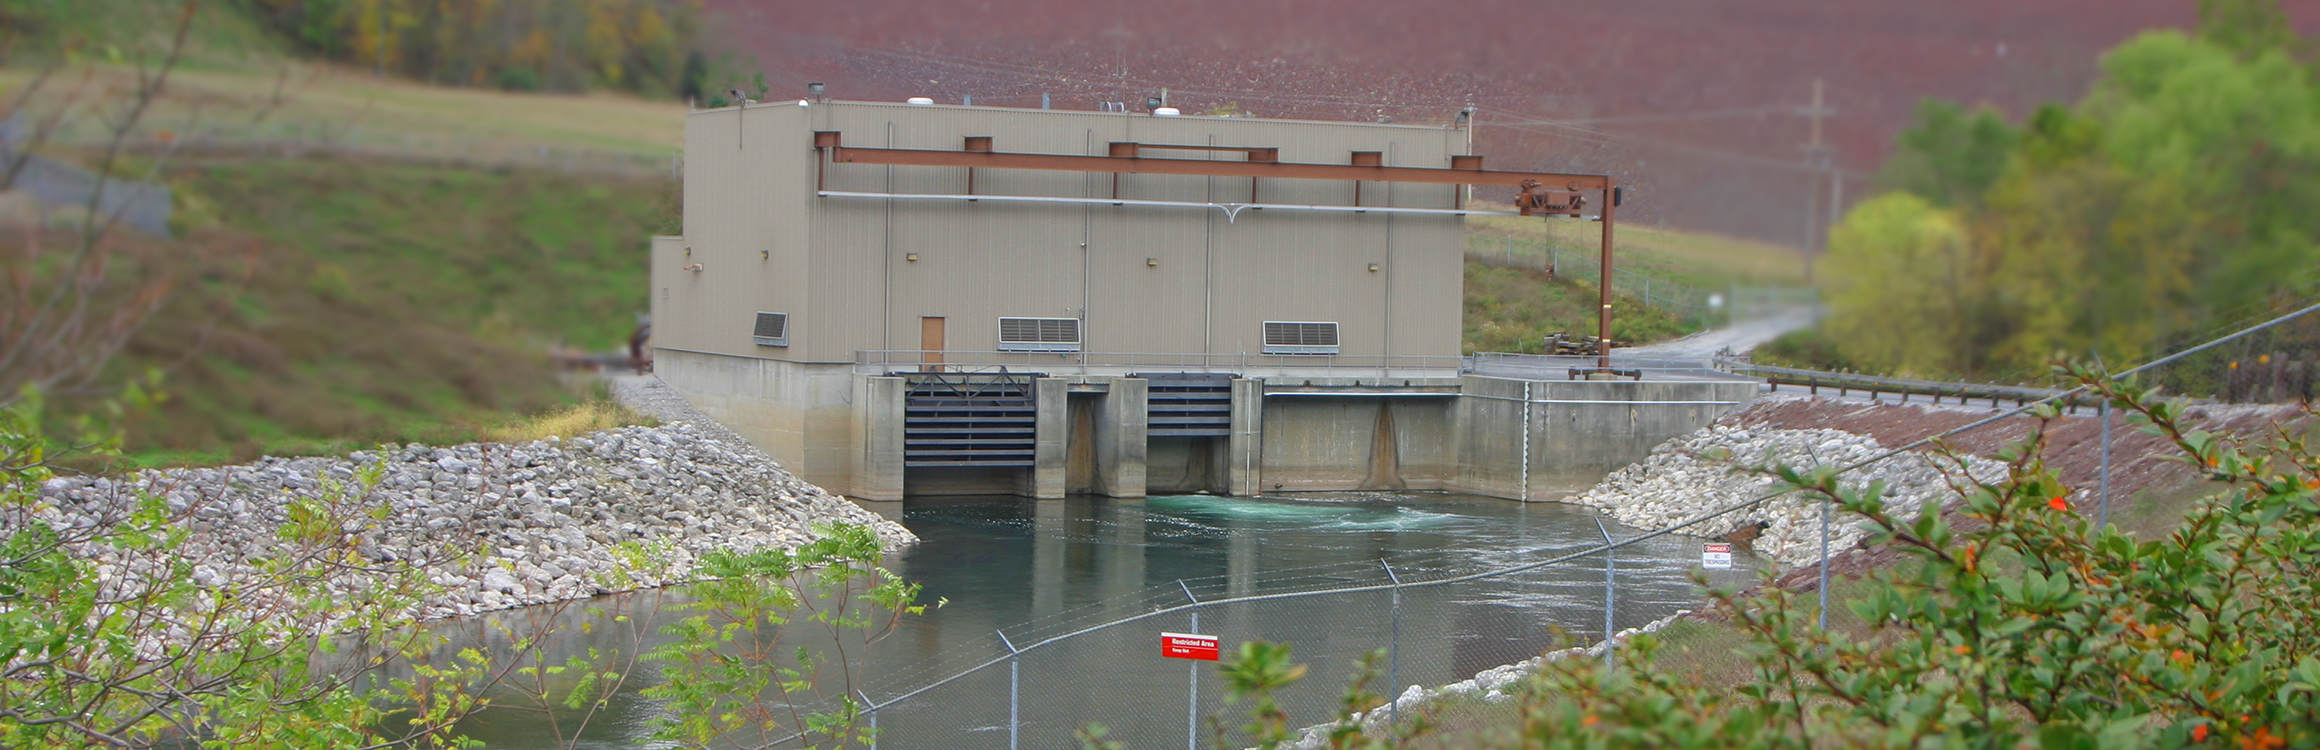 Raystown Hydroelectric Project